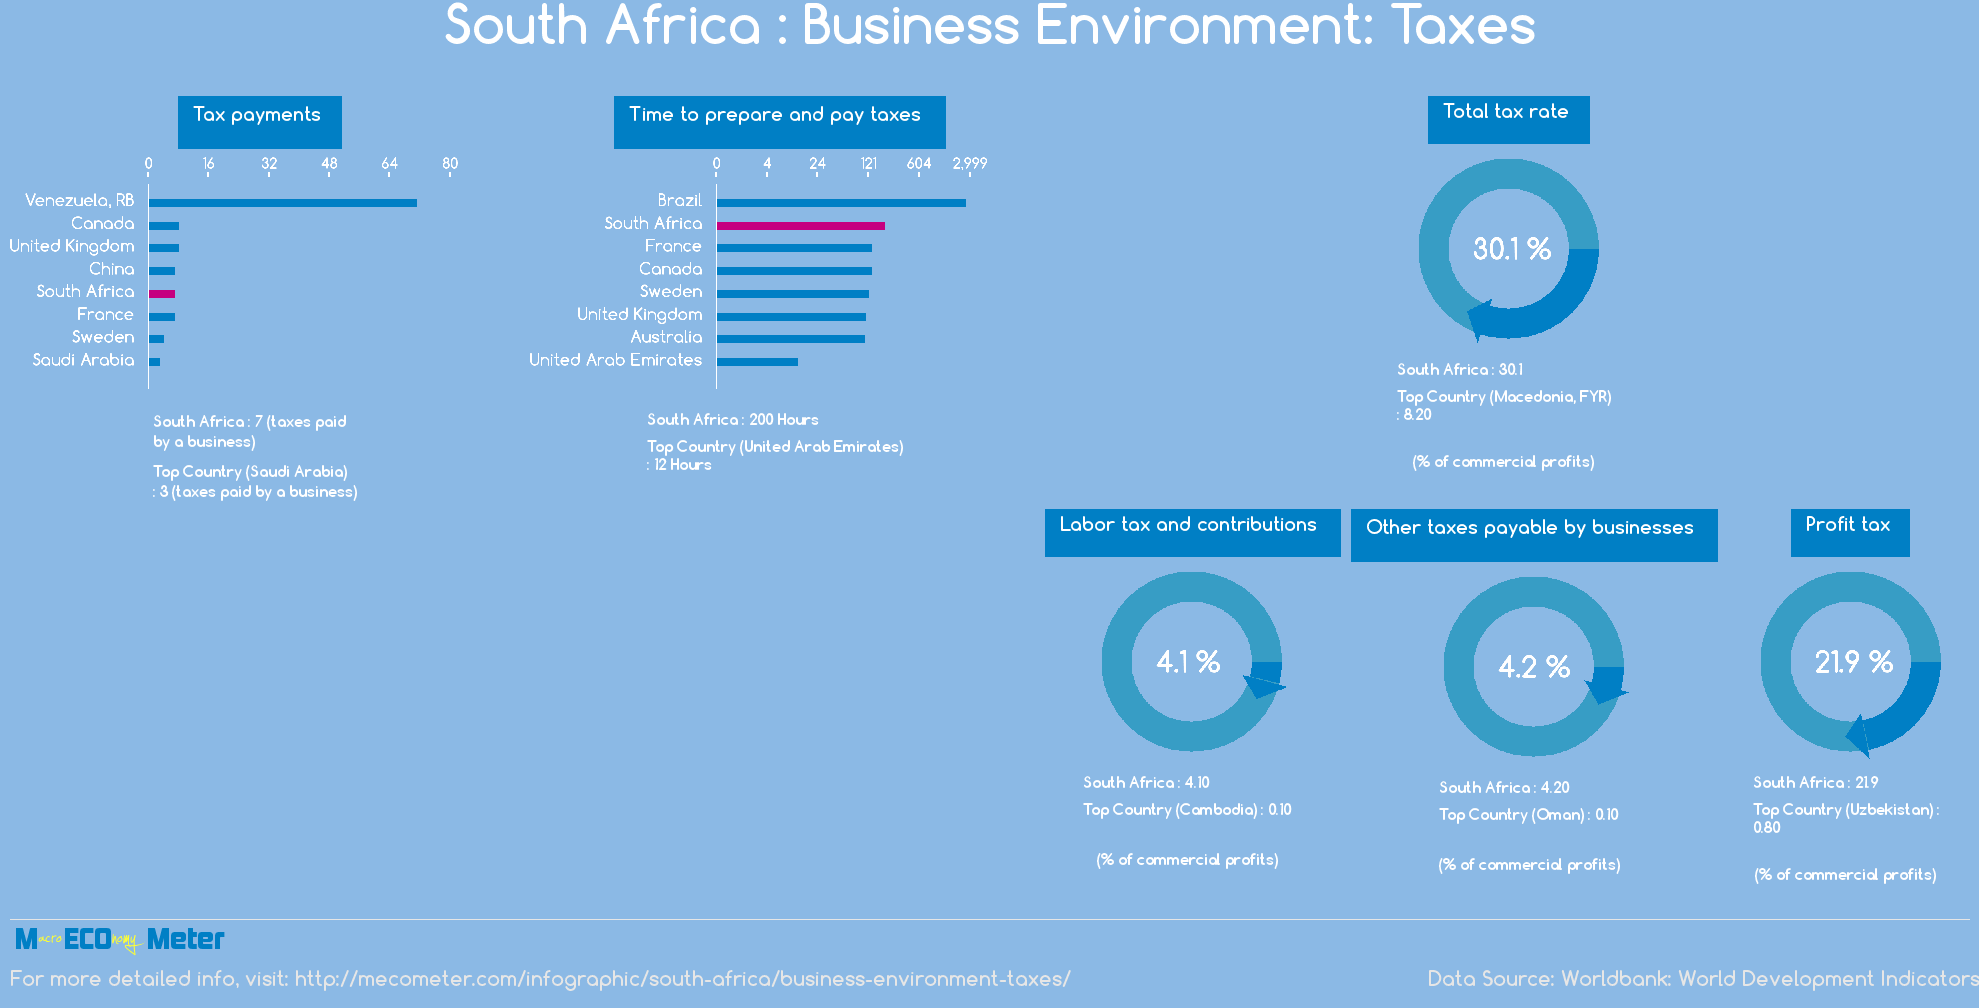 South Africa : Business Environment: Taxes